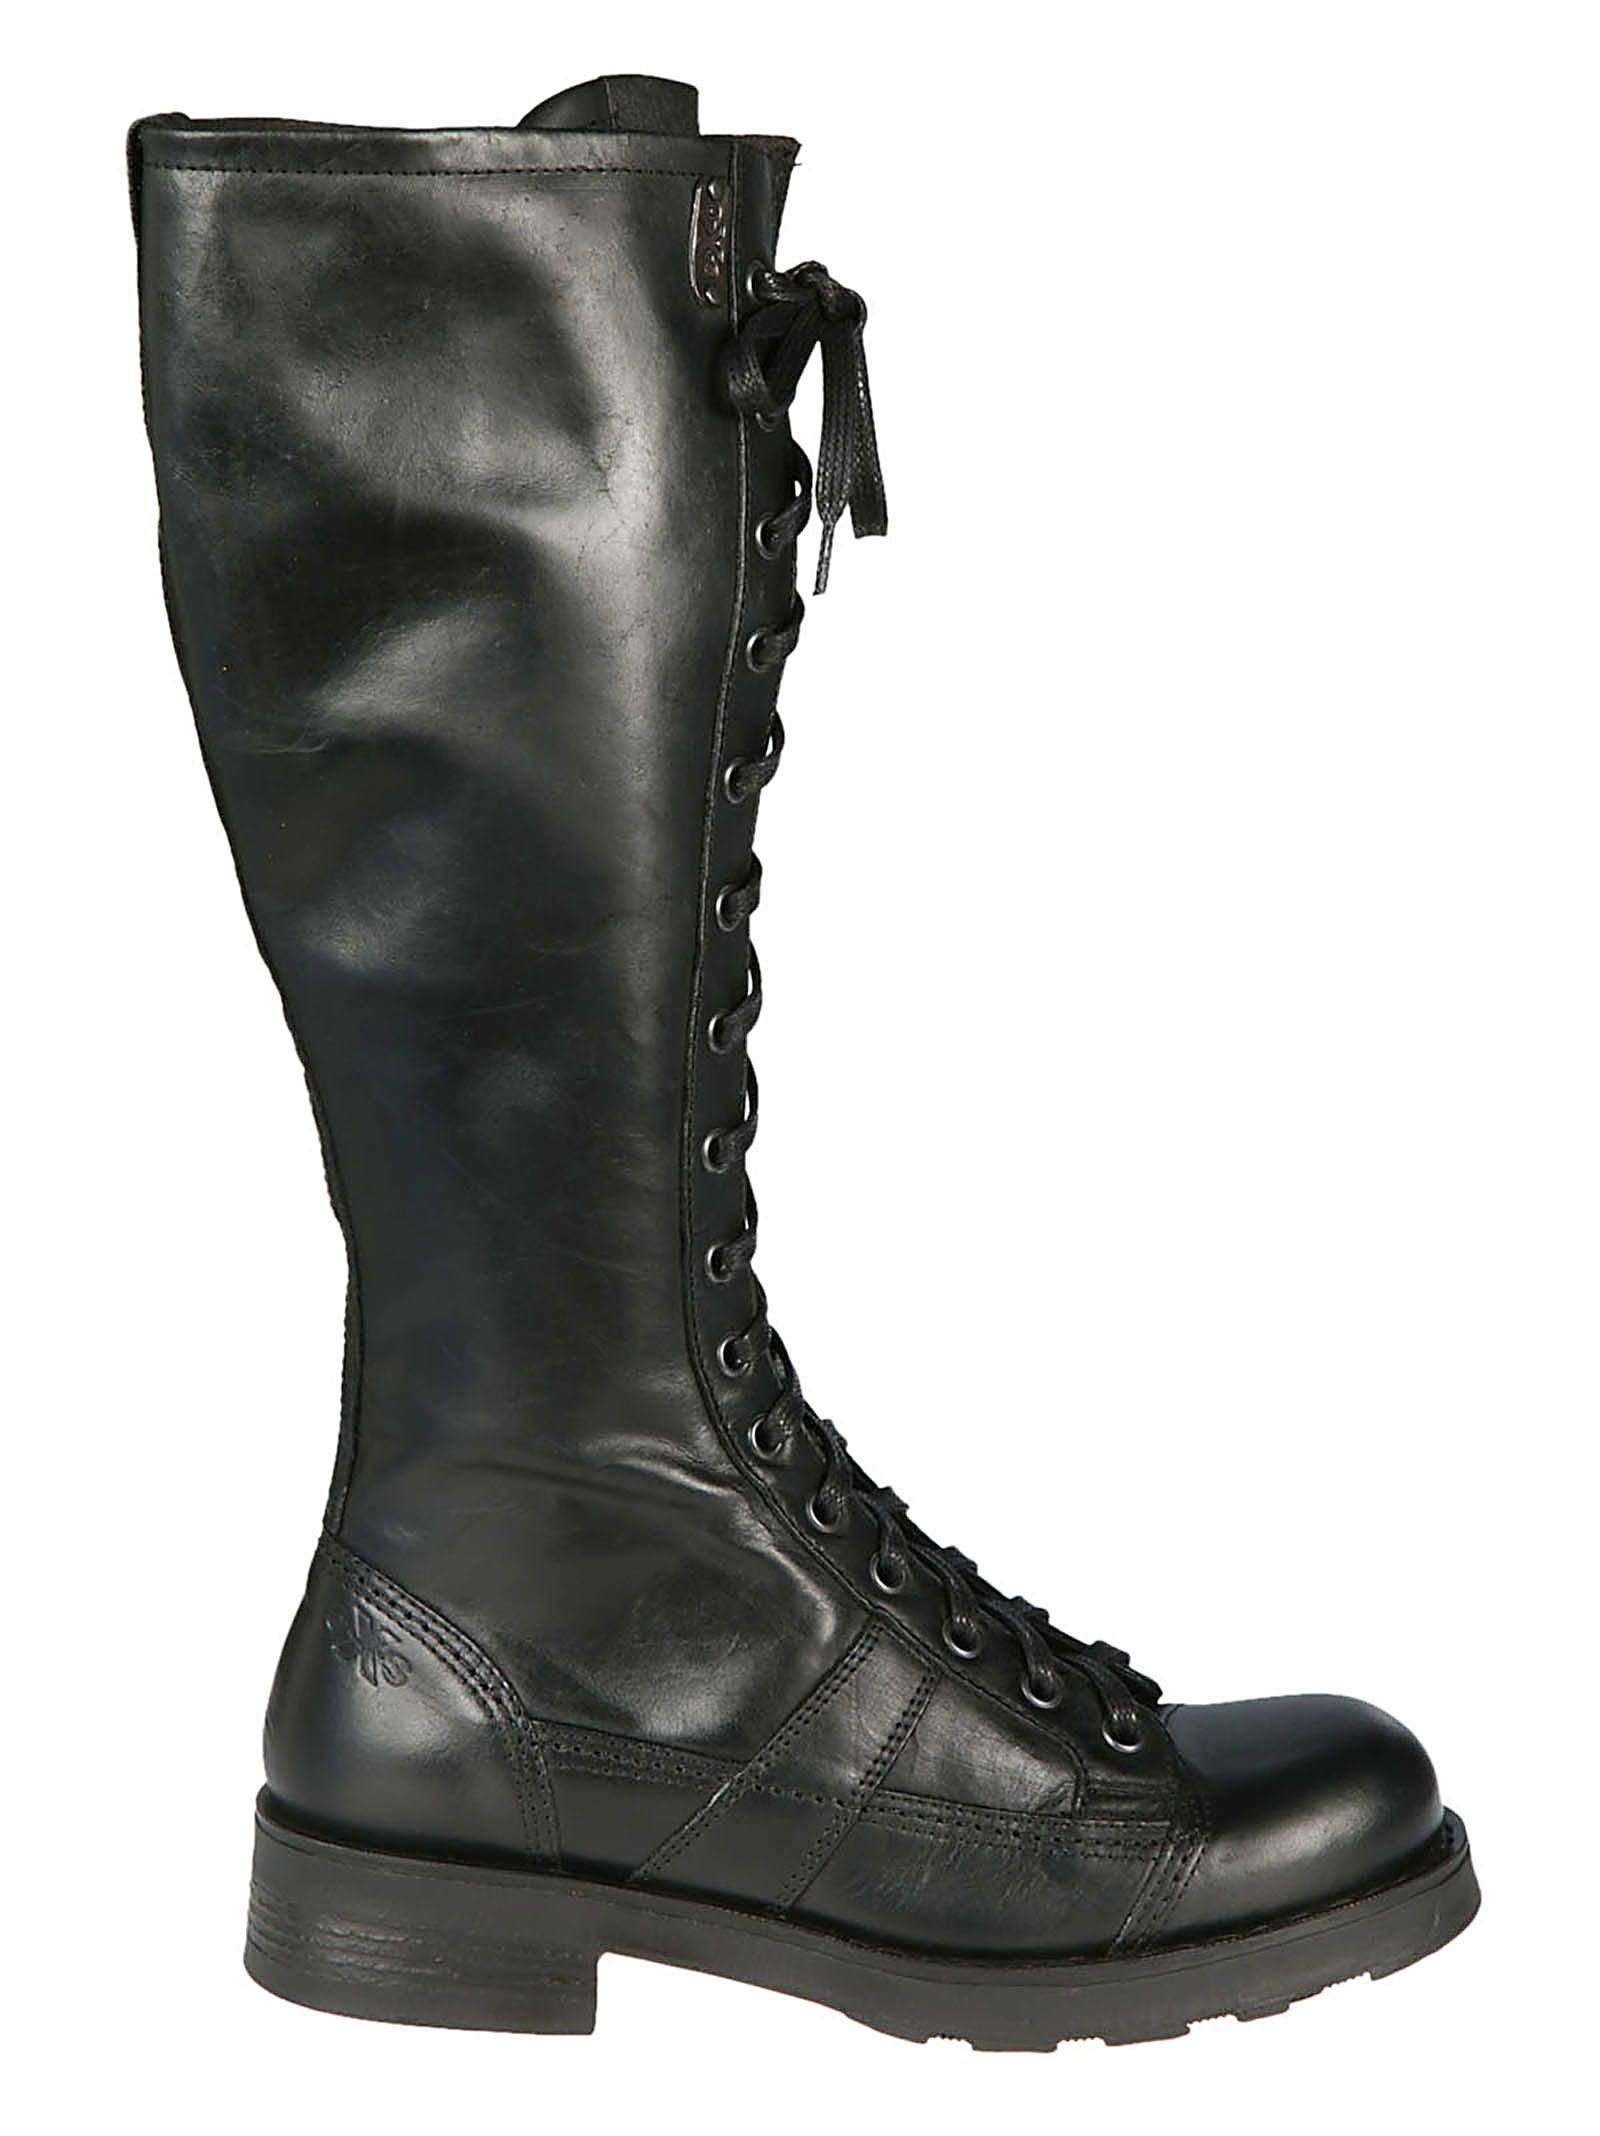 OXS Oxs Charlie Lace-Up Boots in Nero